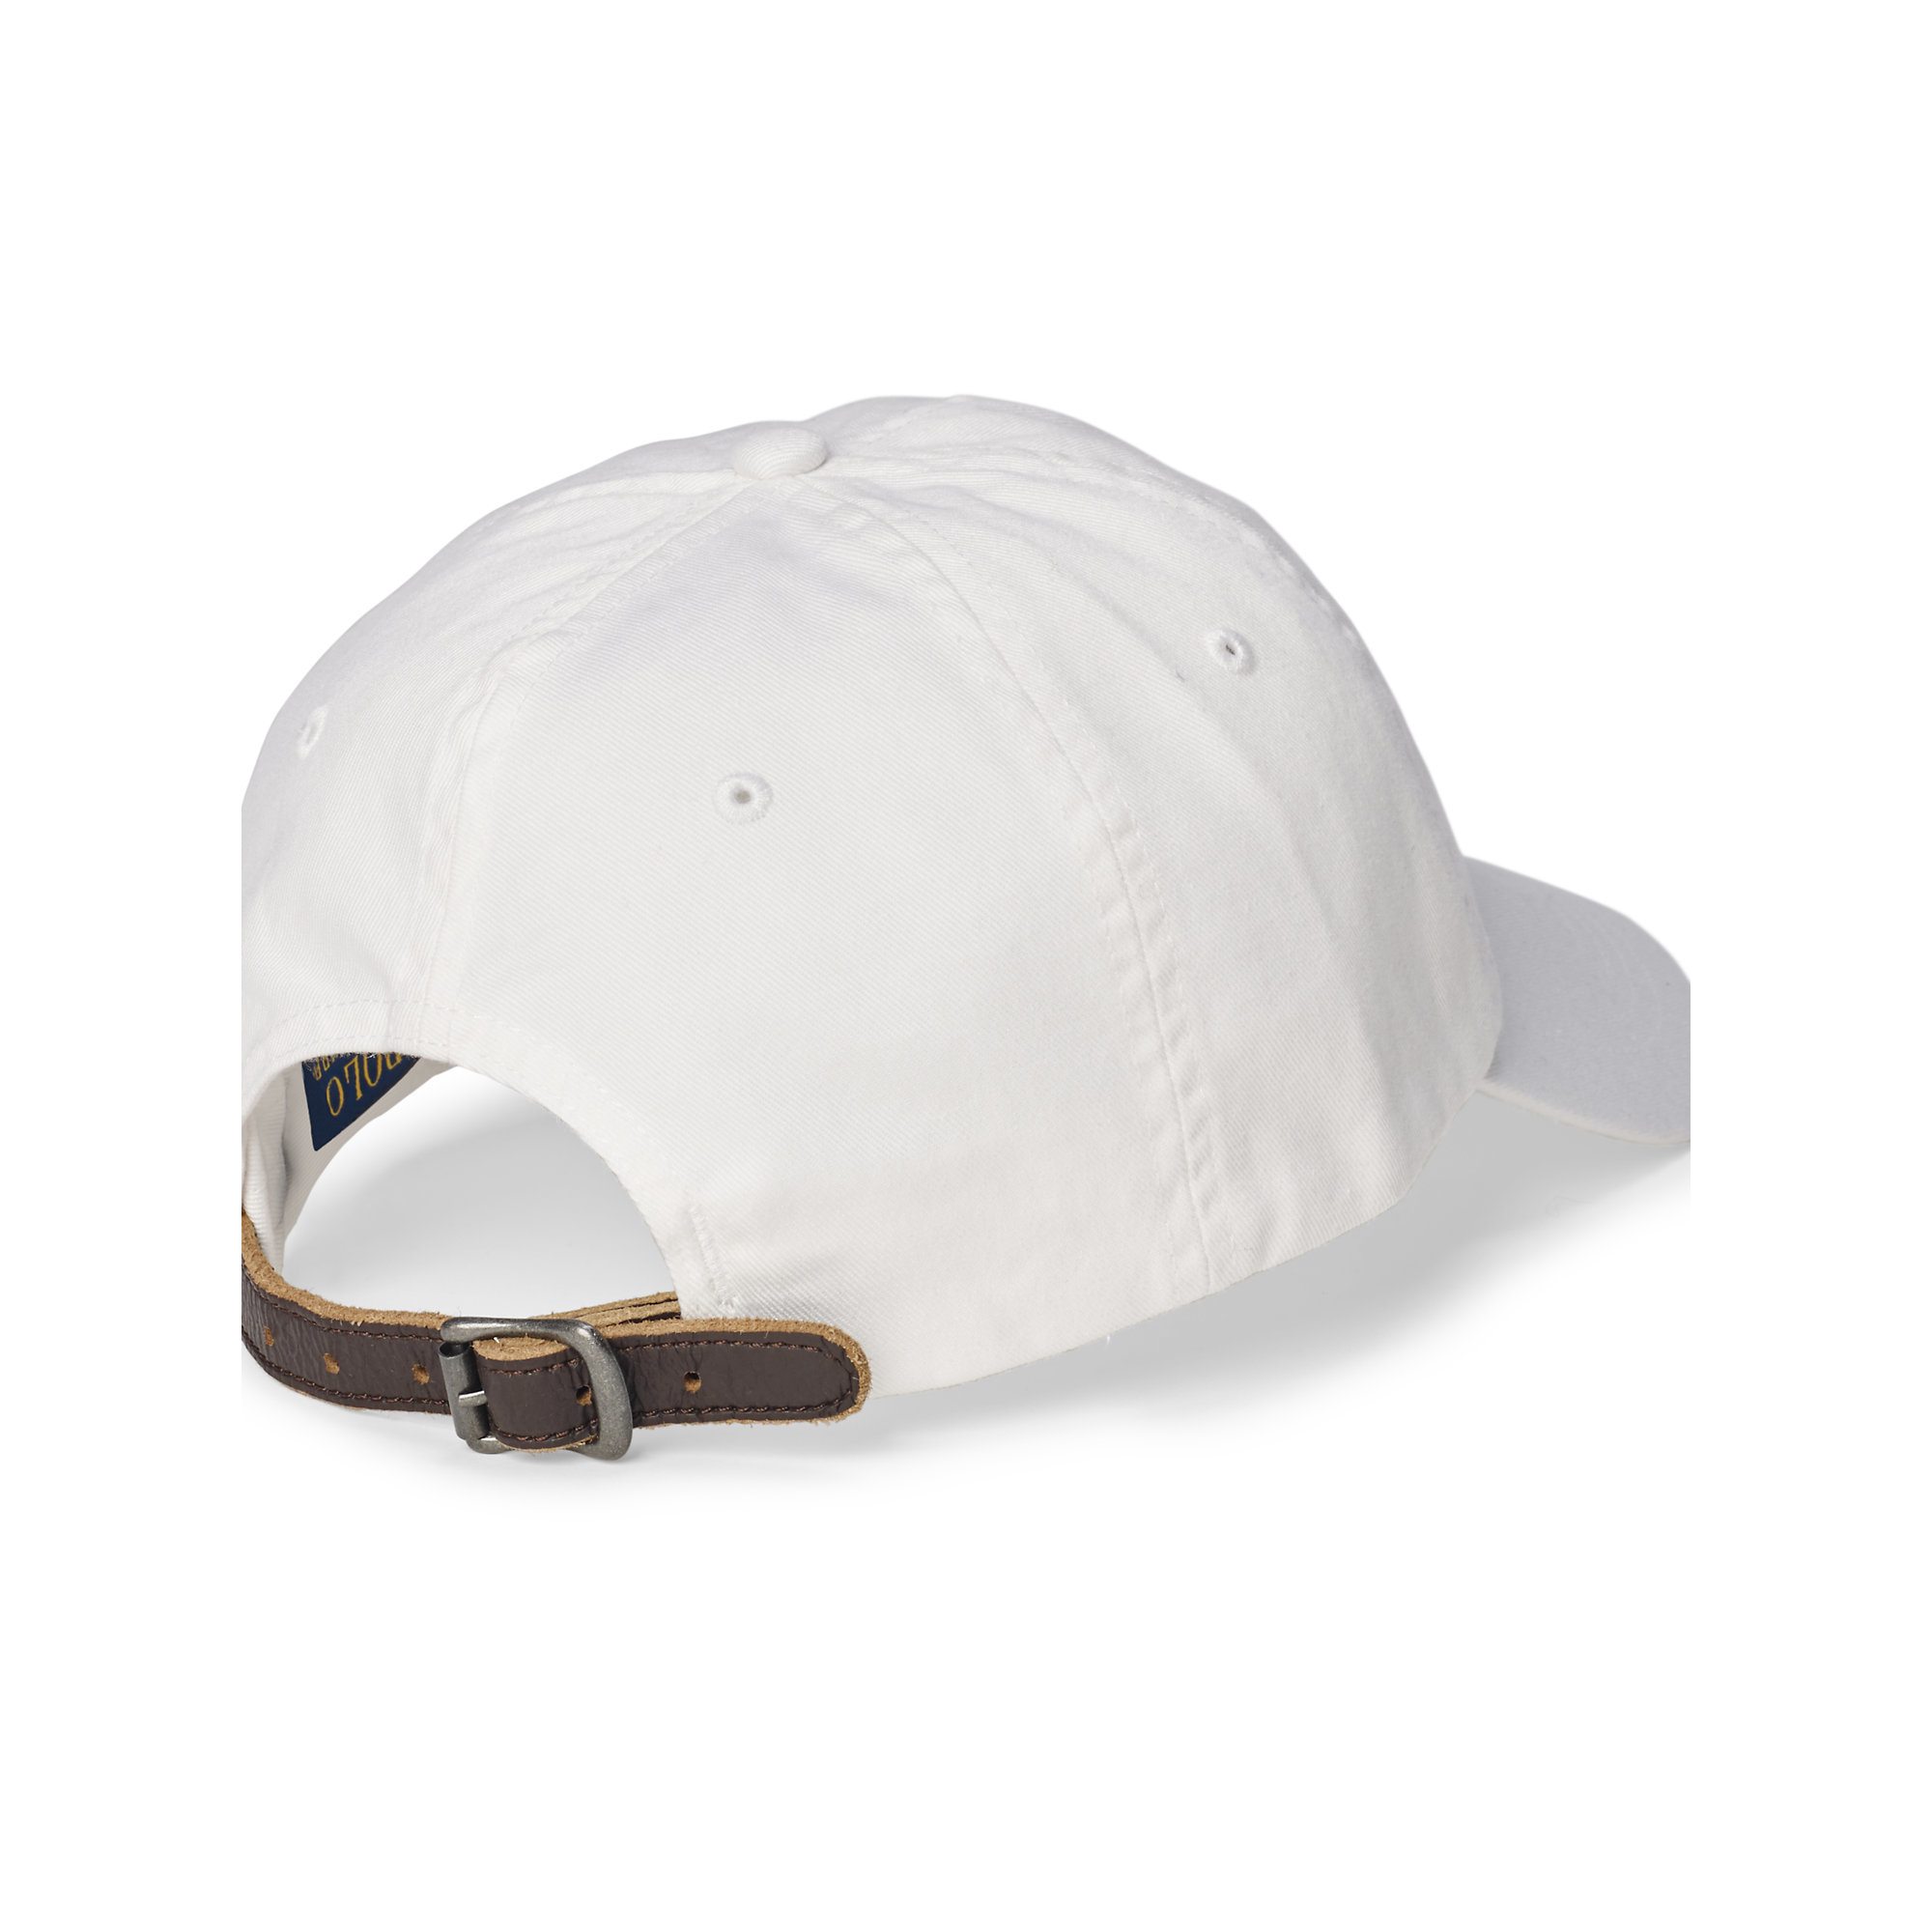 b4aaf2c1 ... usa lyst polo ralph lauren embroidered chino baseball cap in white for  men 851ef 28e41